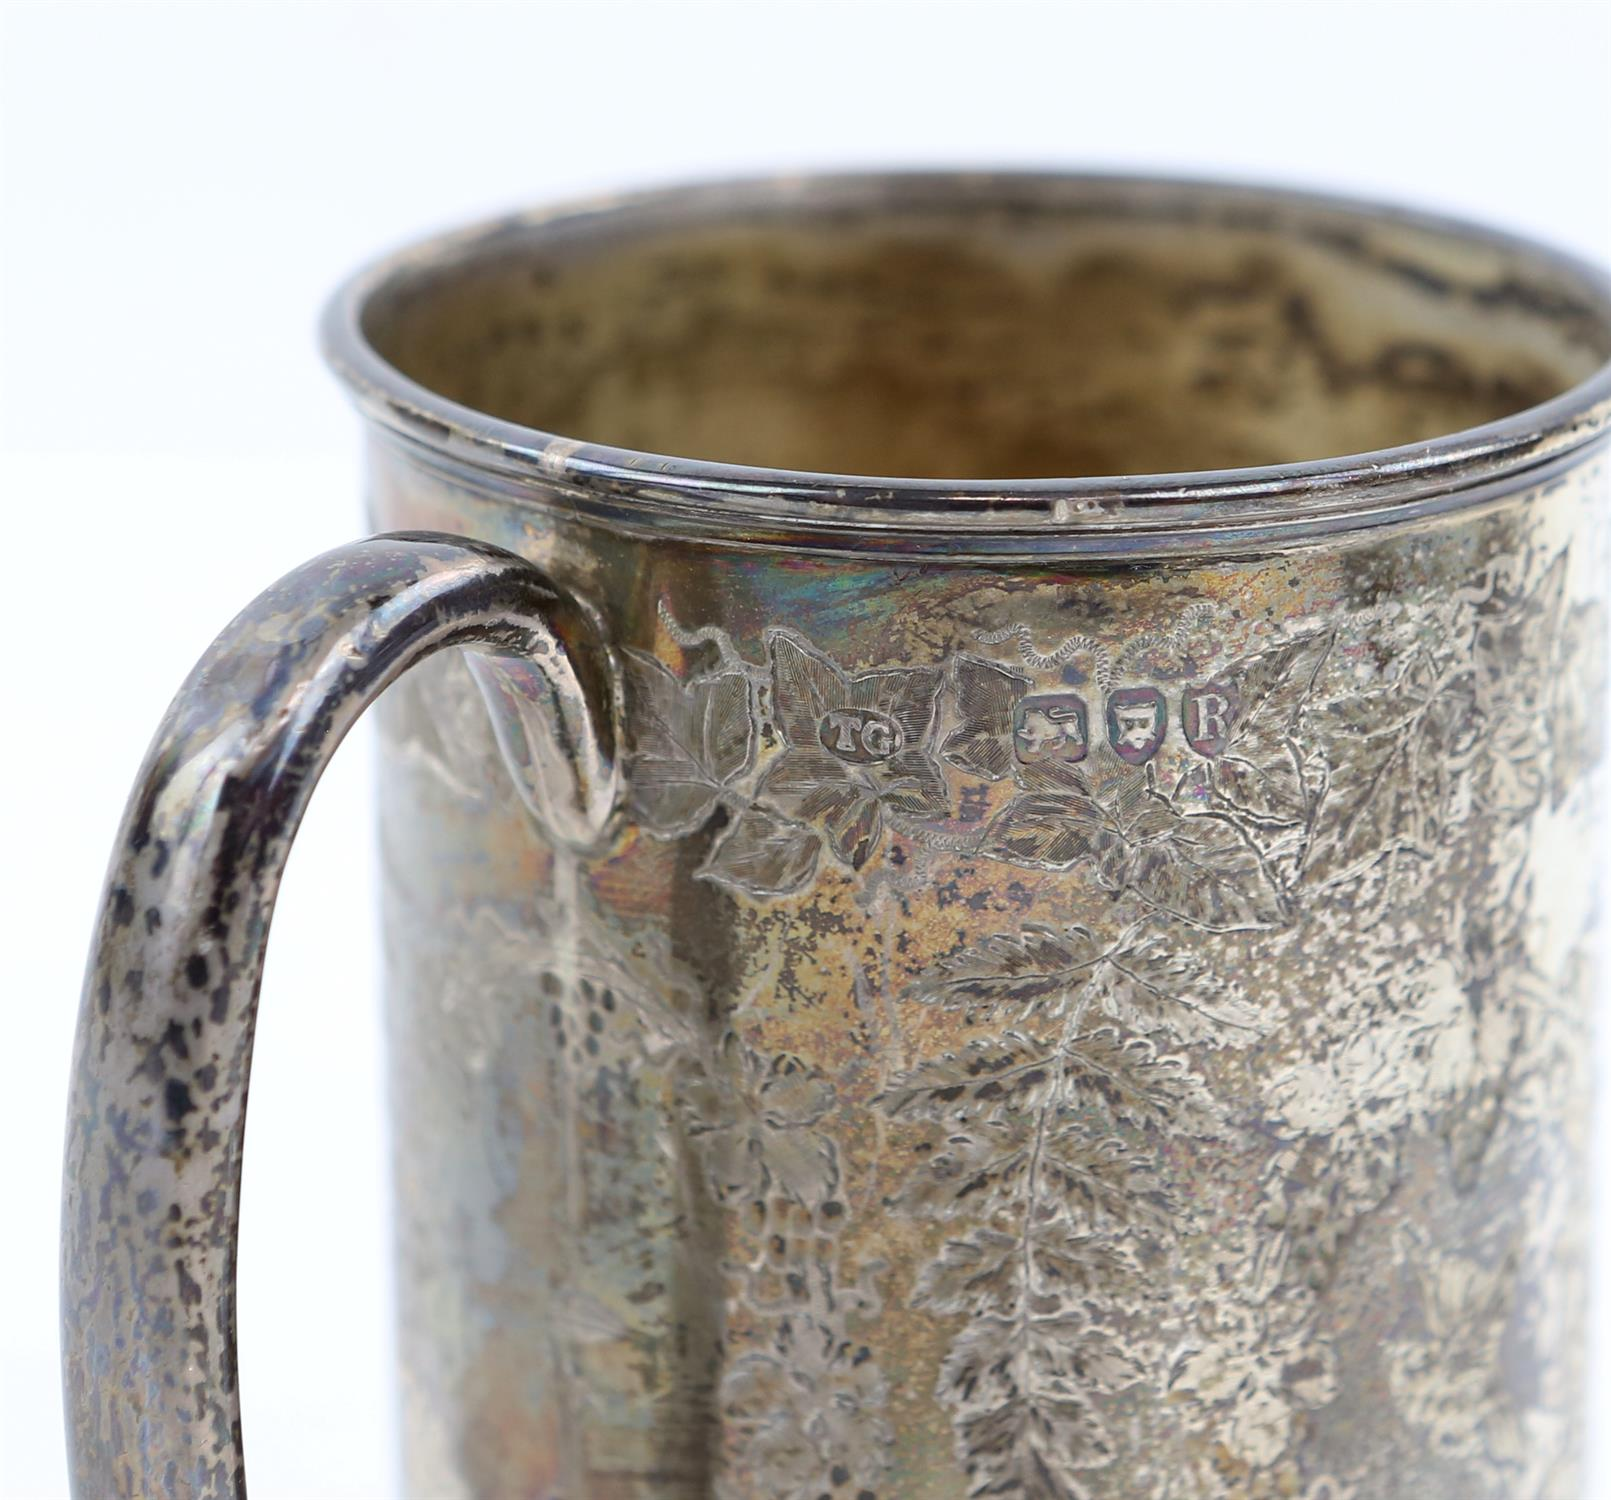 Victorian fern engraved silver mug, a silver sauce boat, a silver small trophy cup 403 grms 13 ozs - Image 8 of 10